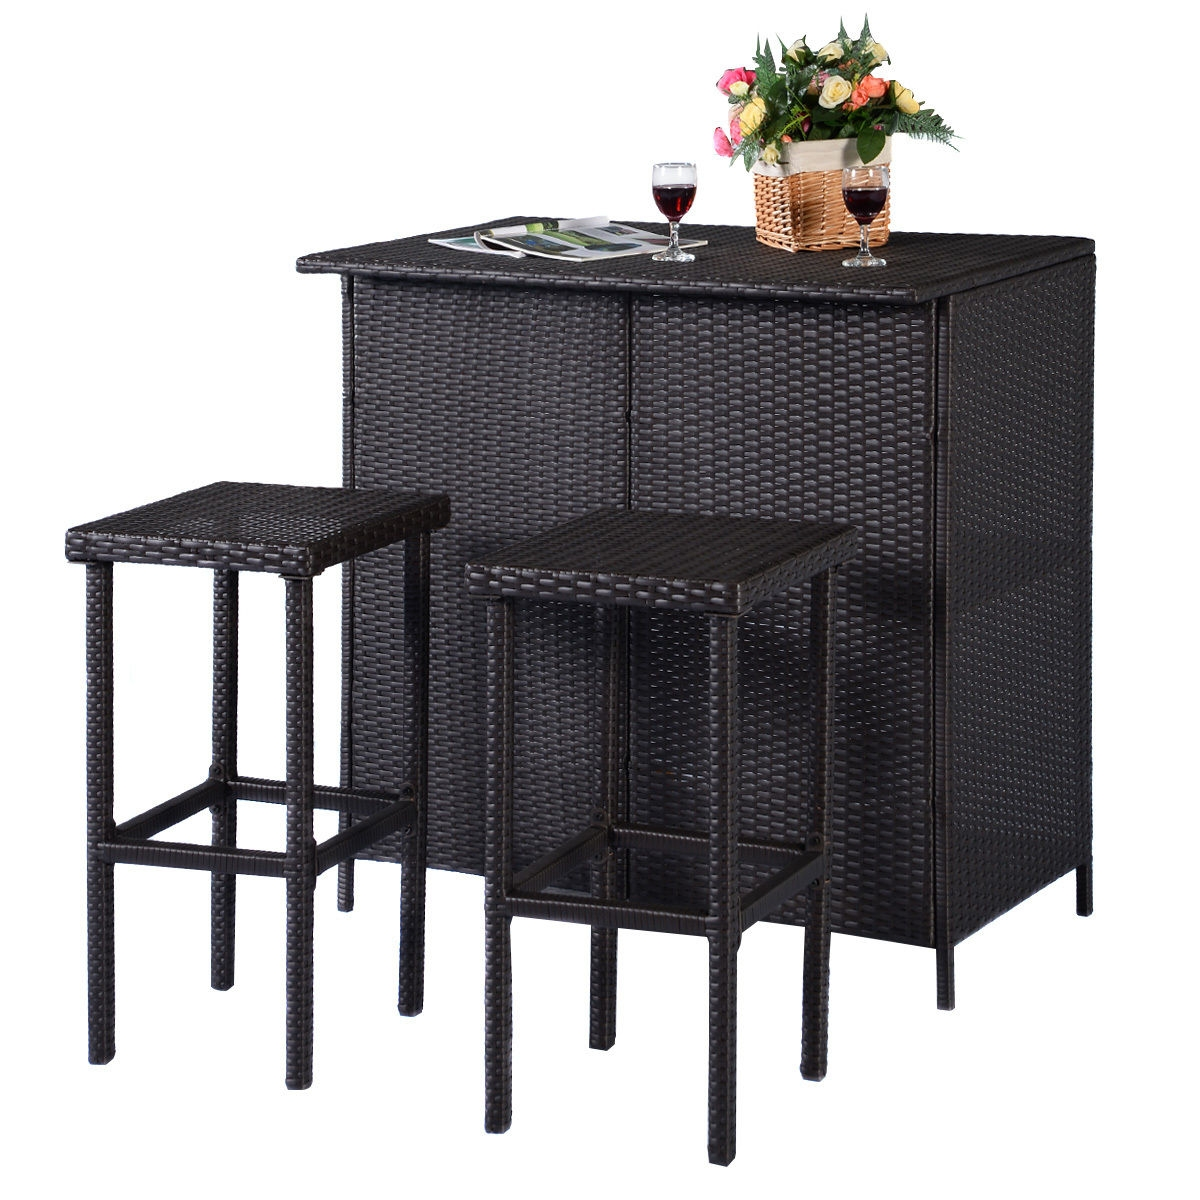 3 pcs Patio Outdoor Rattan Wicker Bar Table and 2 Stools